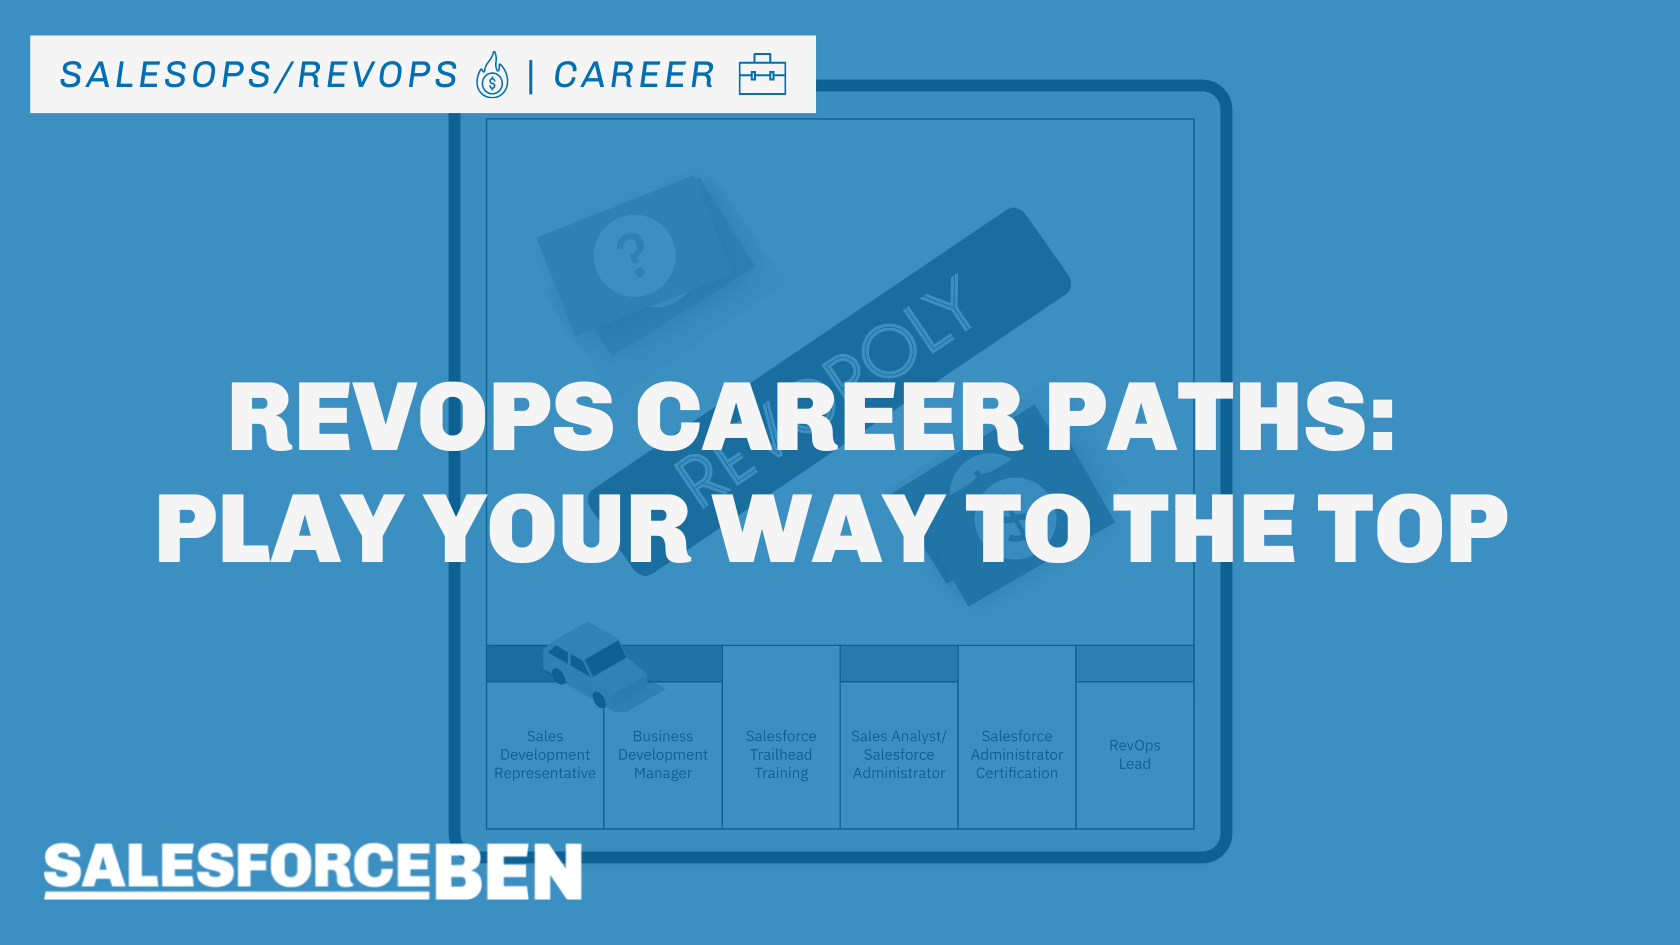 RevOps Career Paths – Play Your Way to the Top